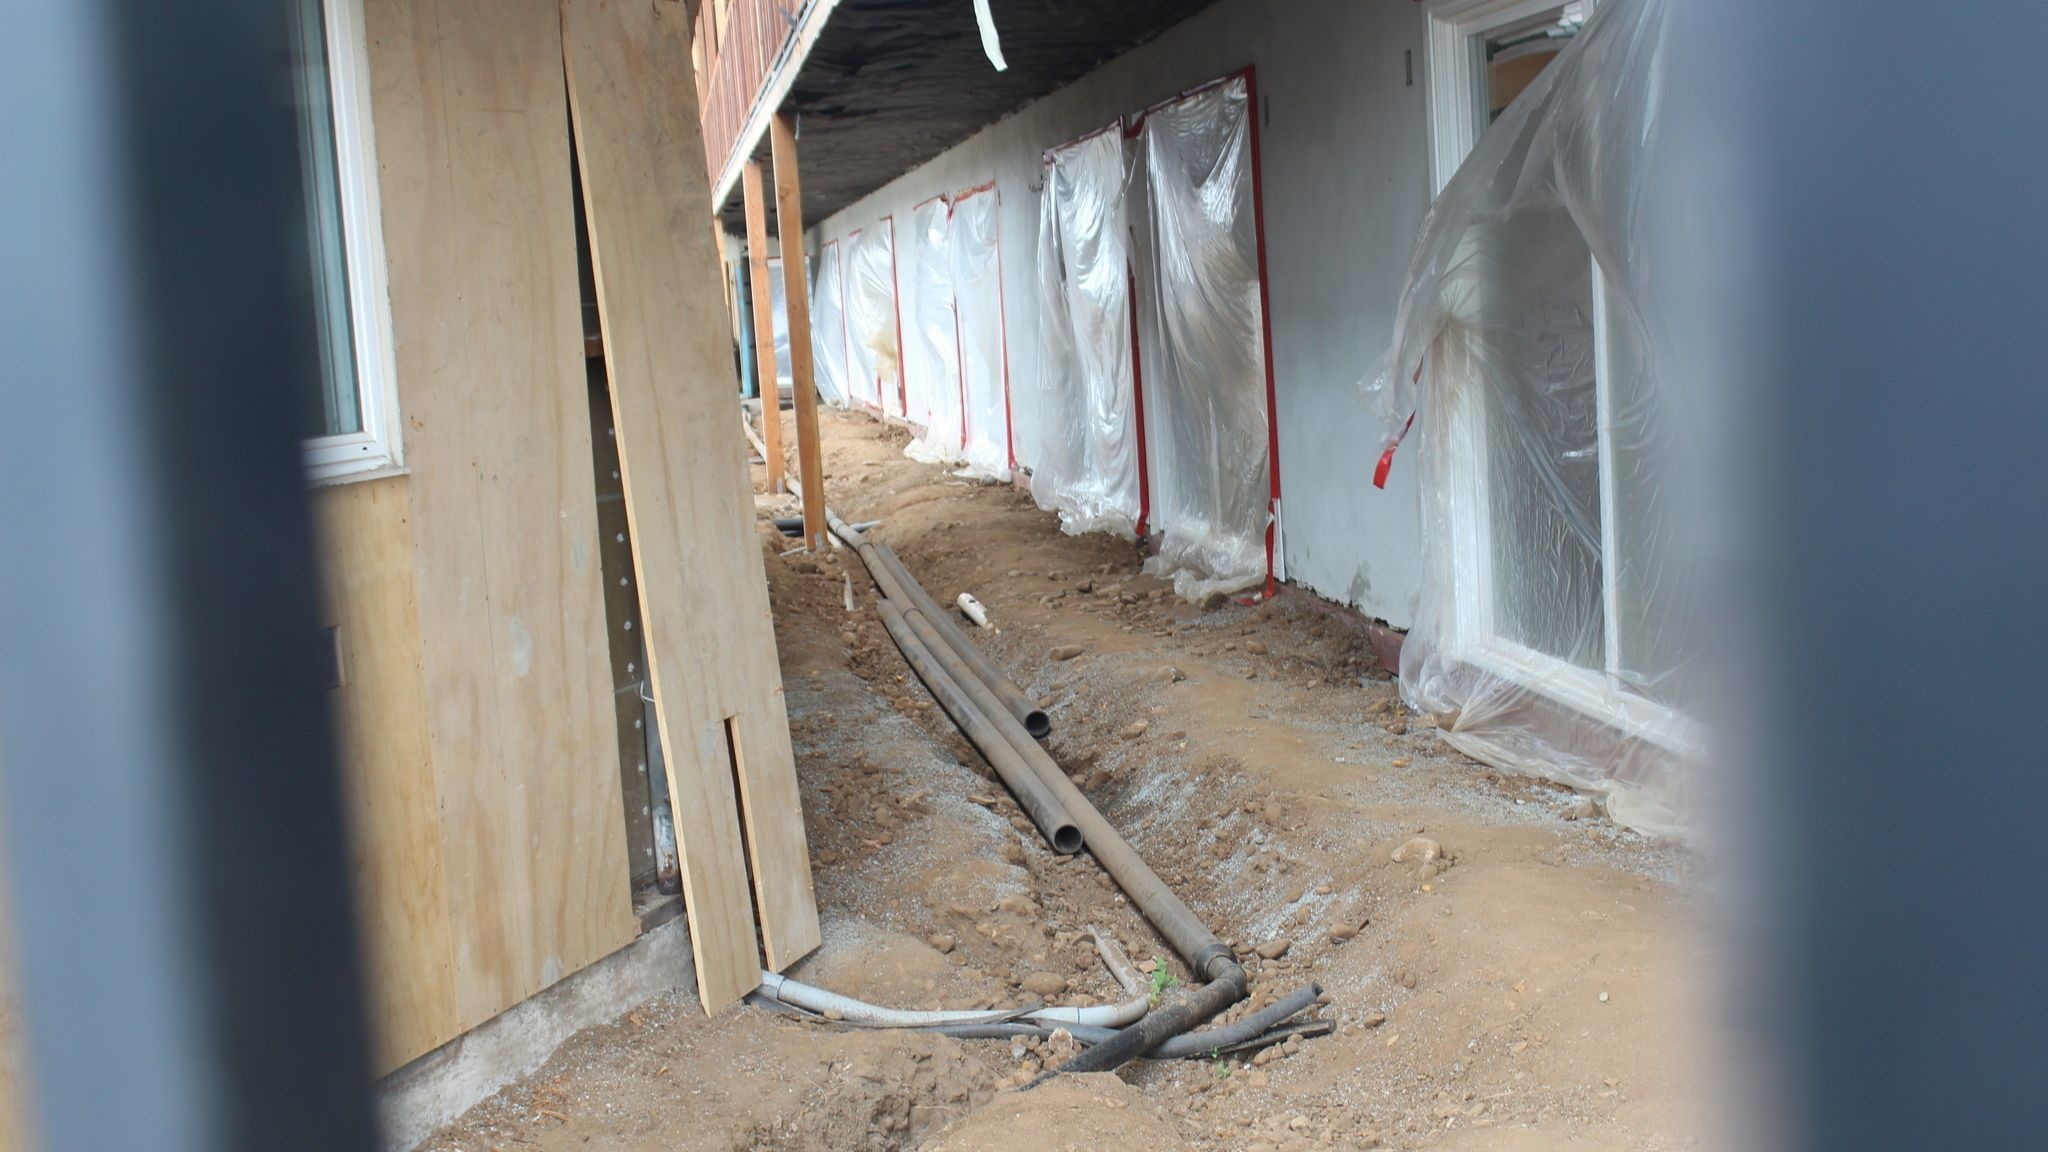 The remaining work includes installing a new sewer line.